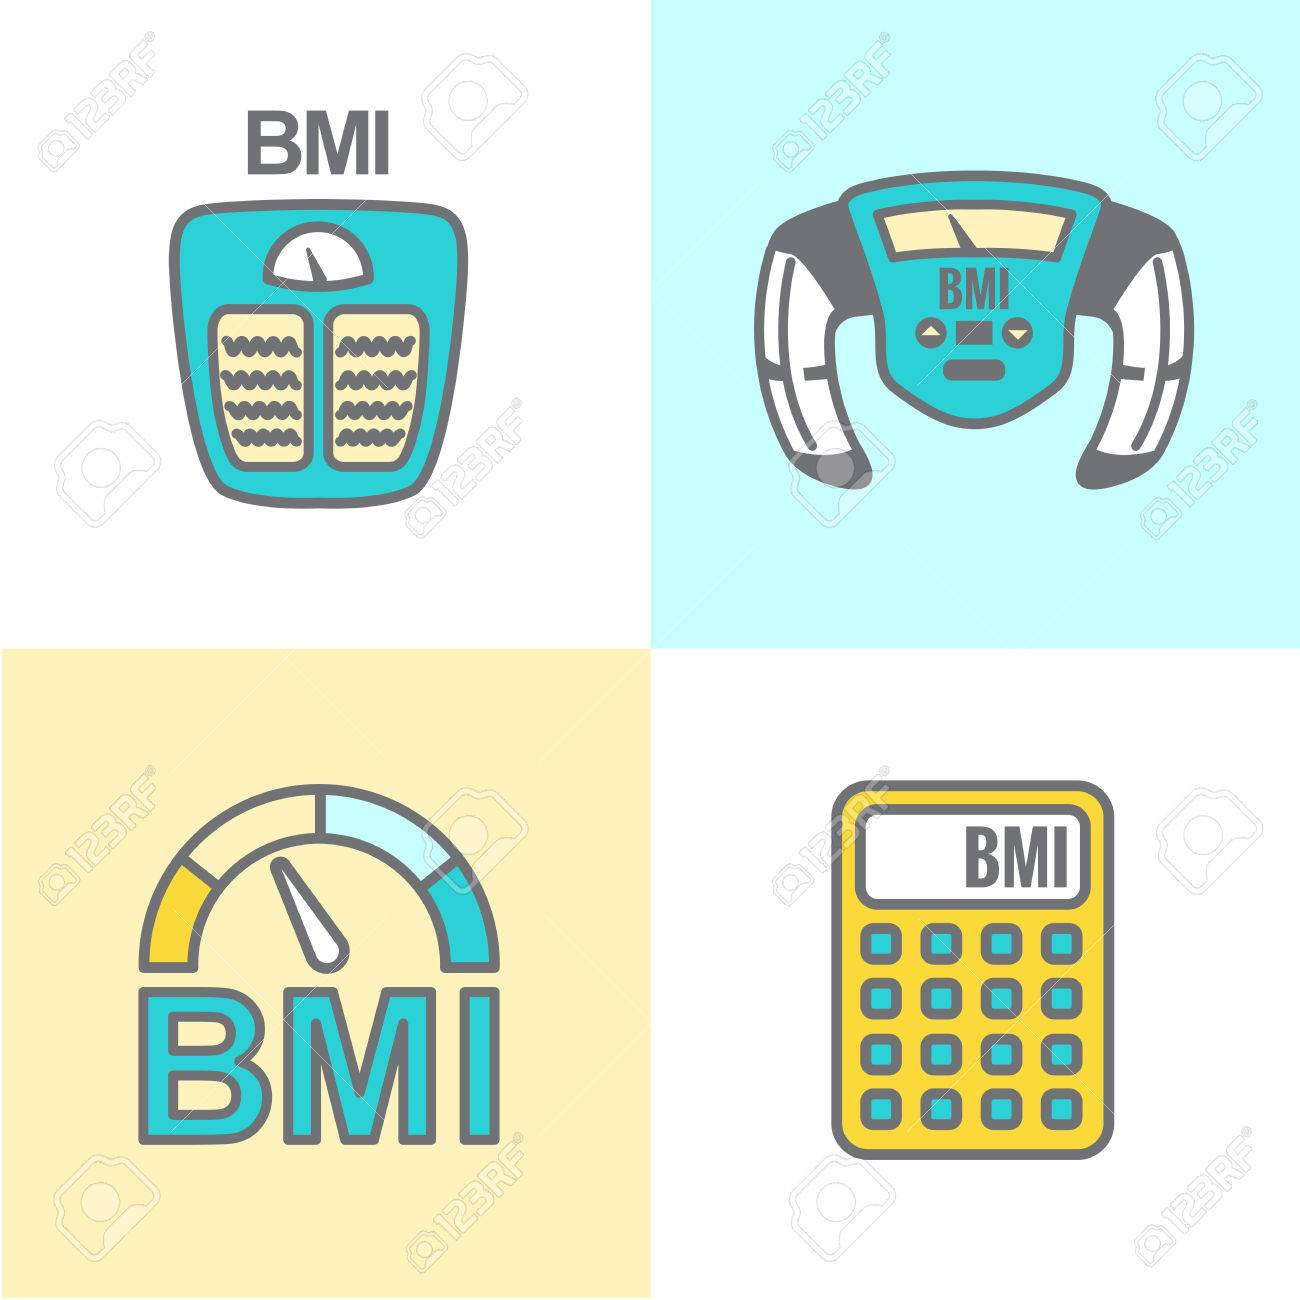 BMI or Body Mass Index Icons.